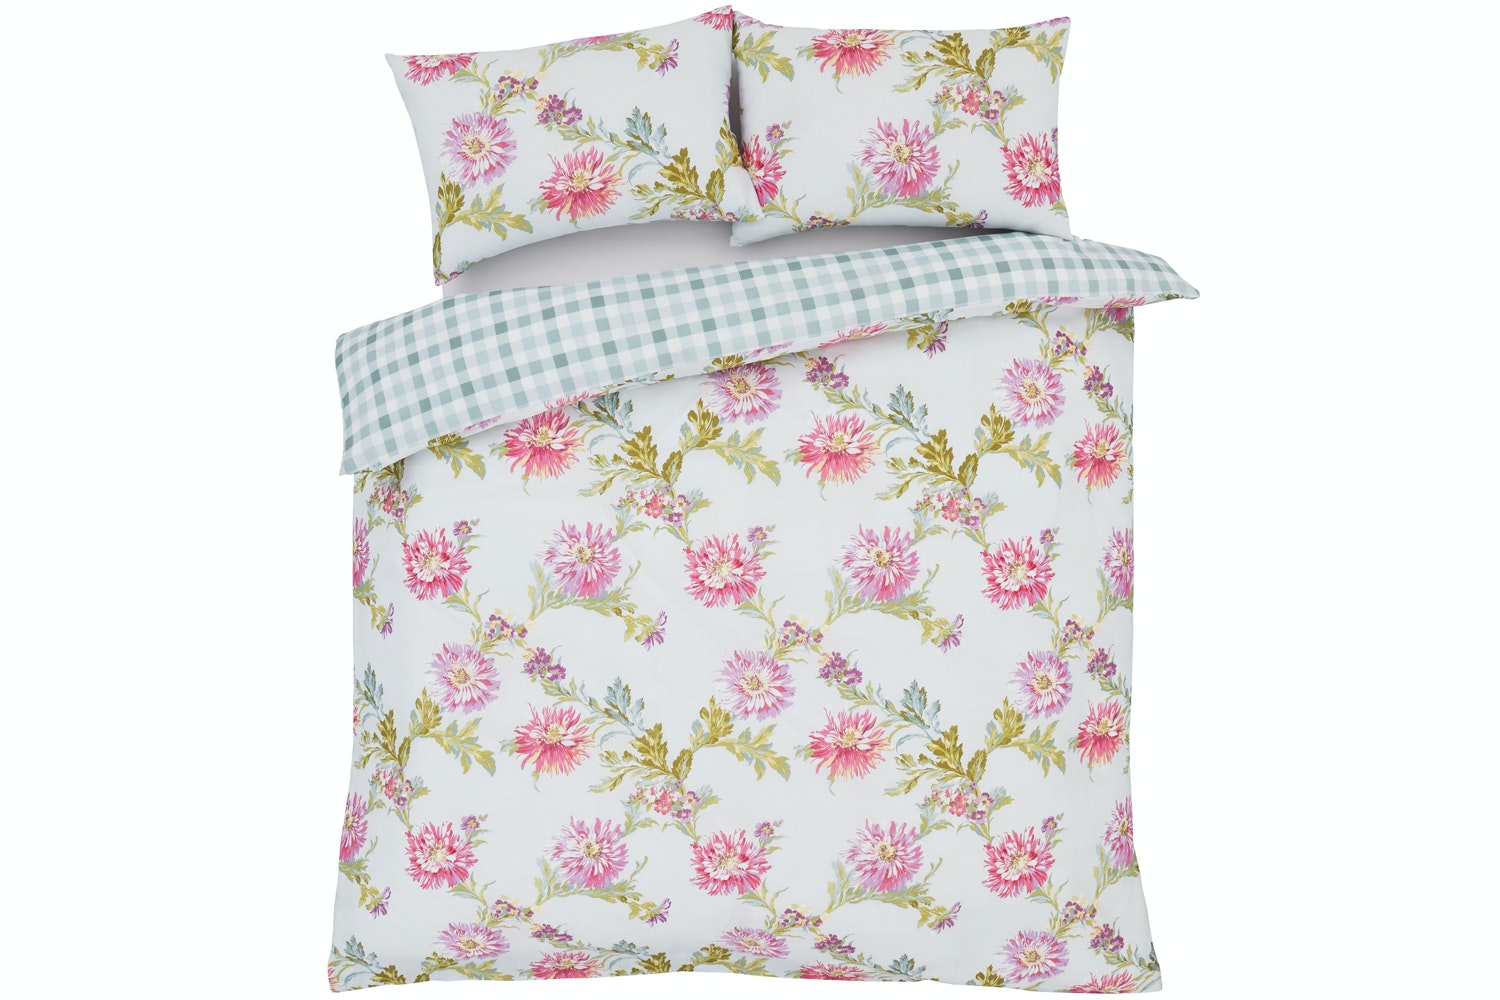 Chrysanthemum Check Duckegg Quiltset |Double